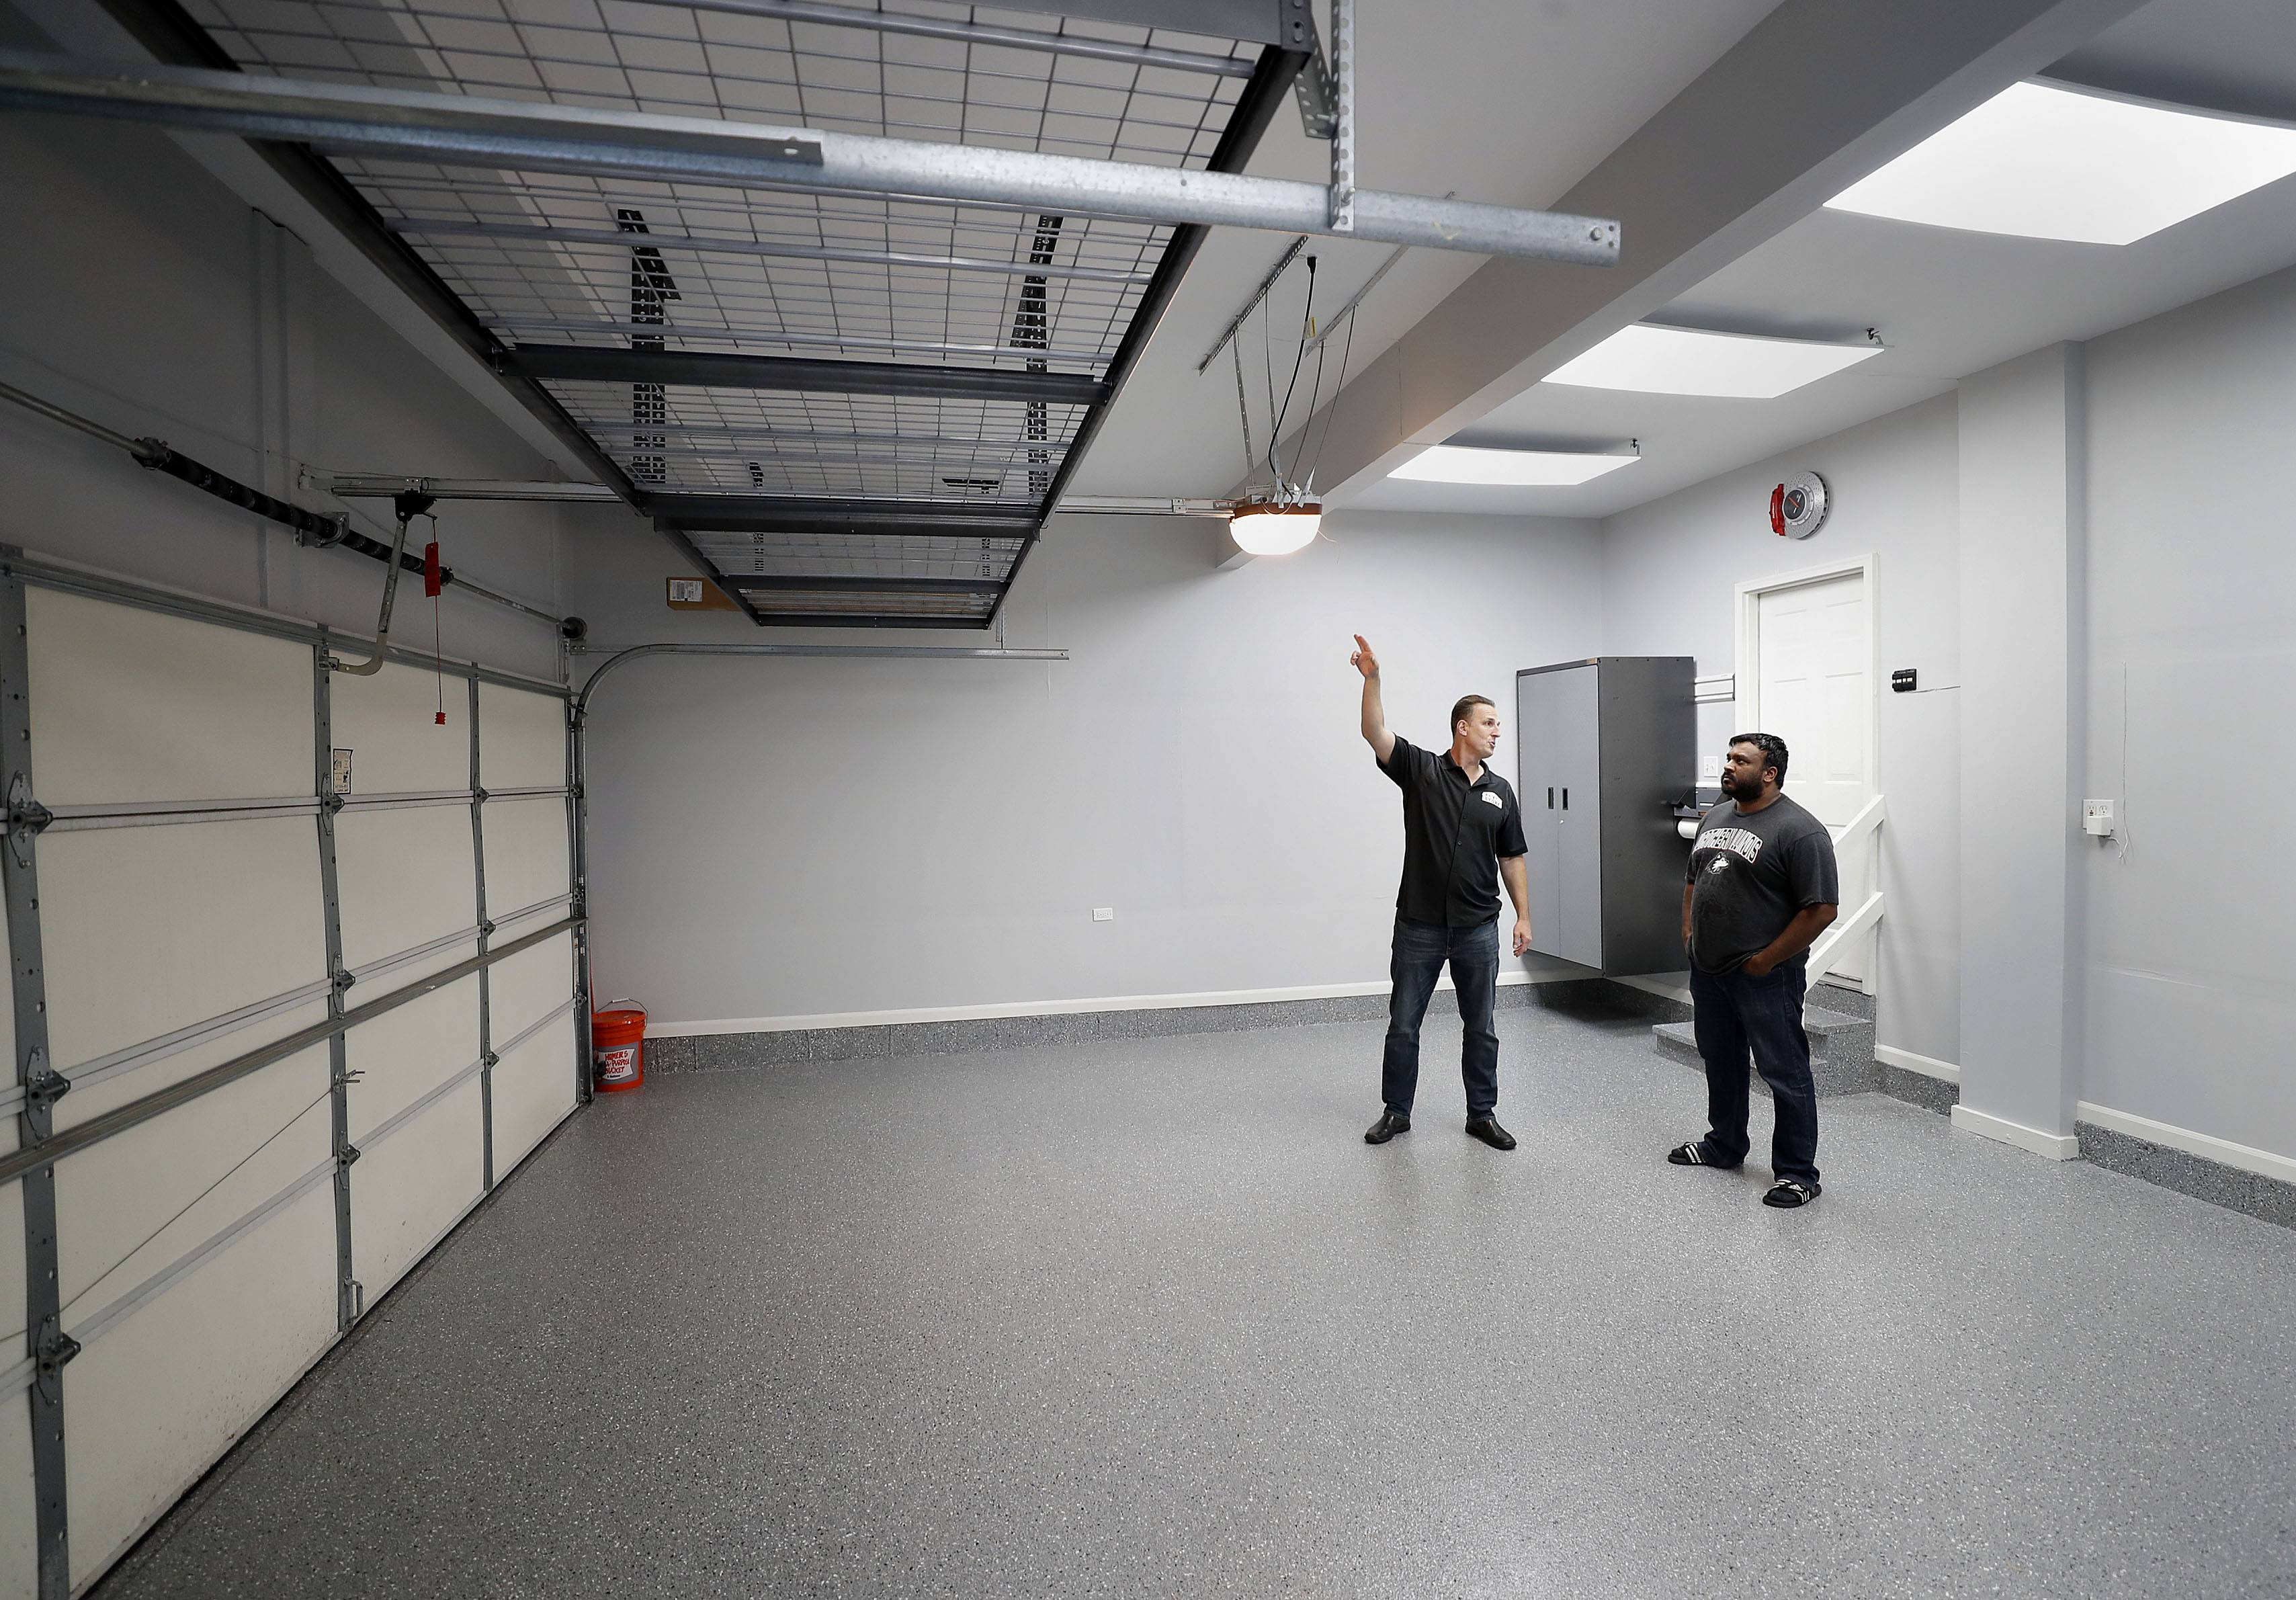 Mathew Joseph, right, of Vernon Hills and Garage Store owner Jim Melchert look at new overhead racks that were installed in Joseph's garage after he won a Garage Makeover contest.